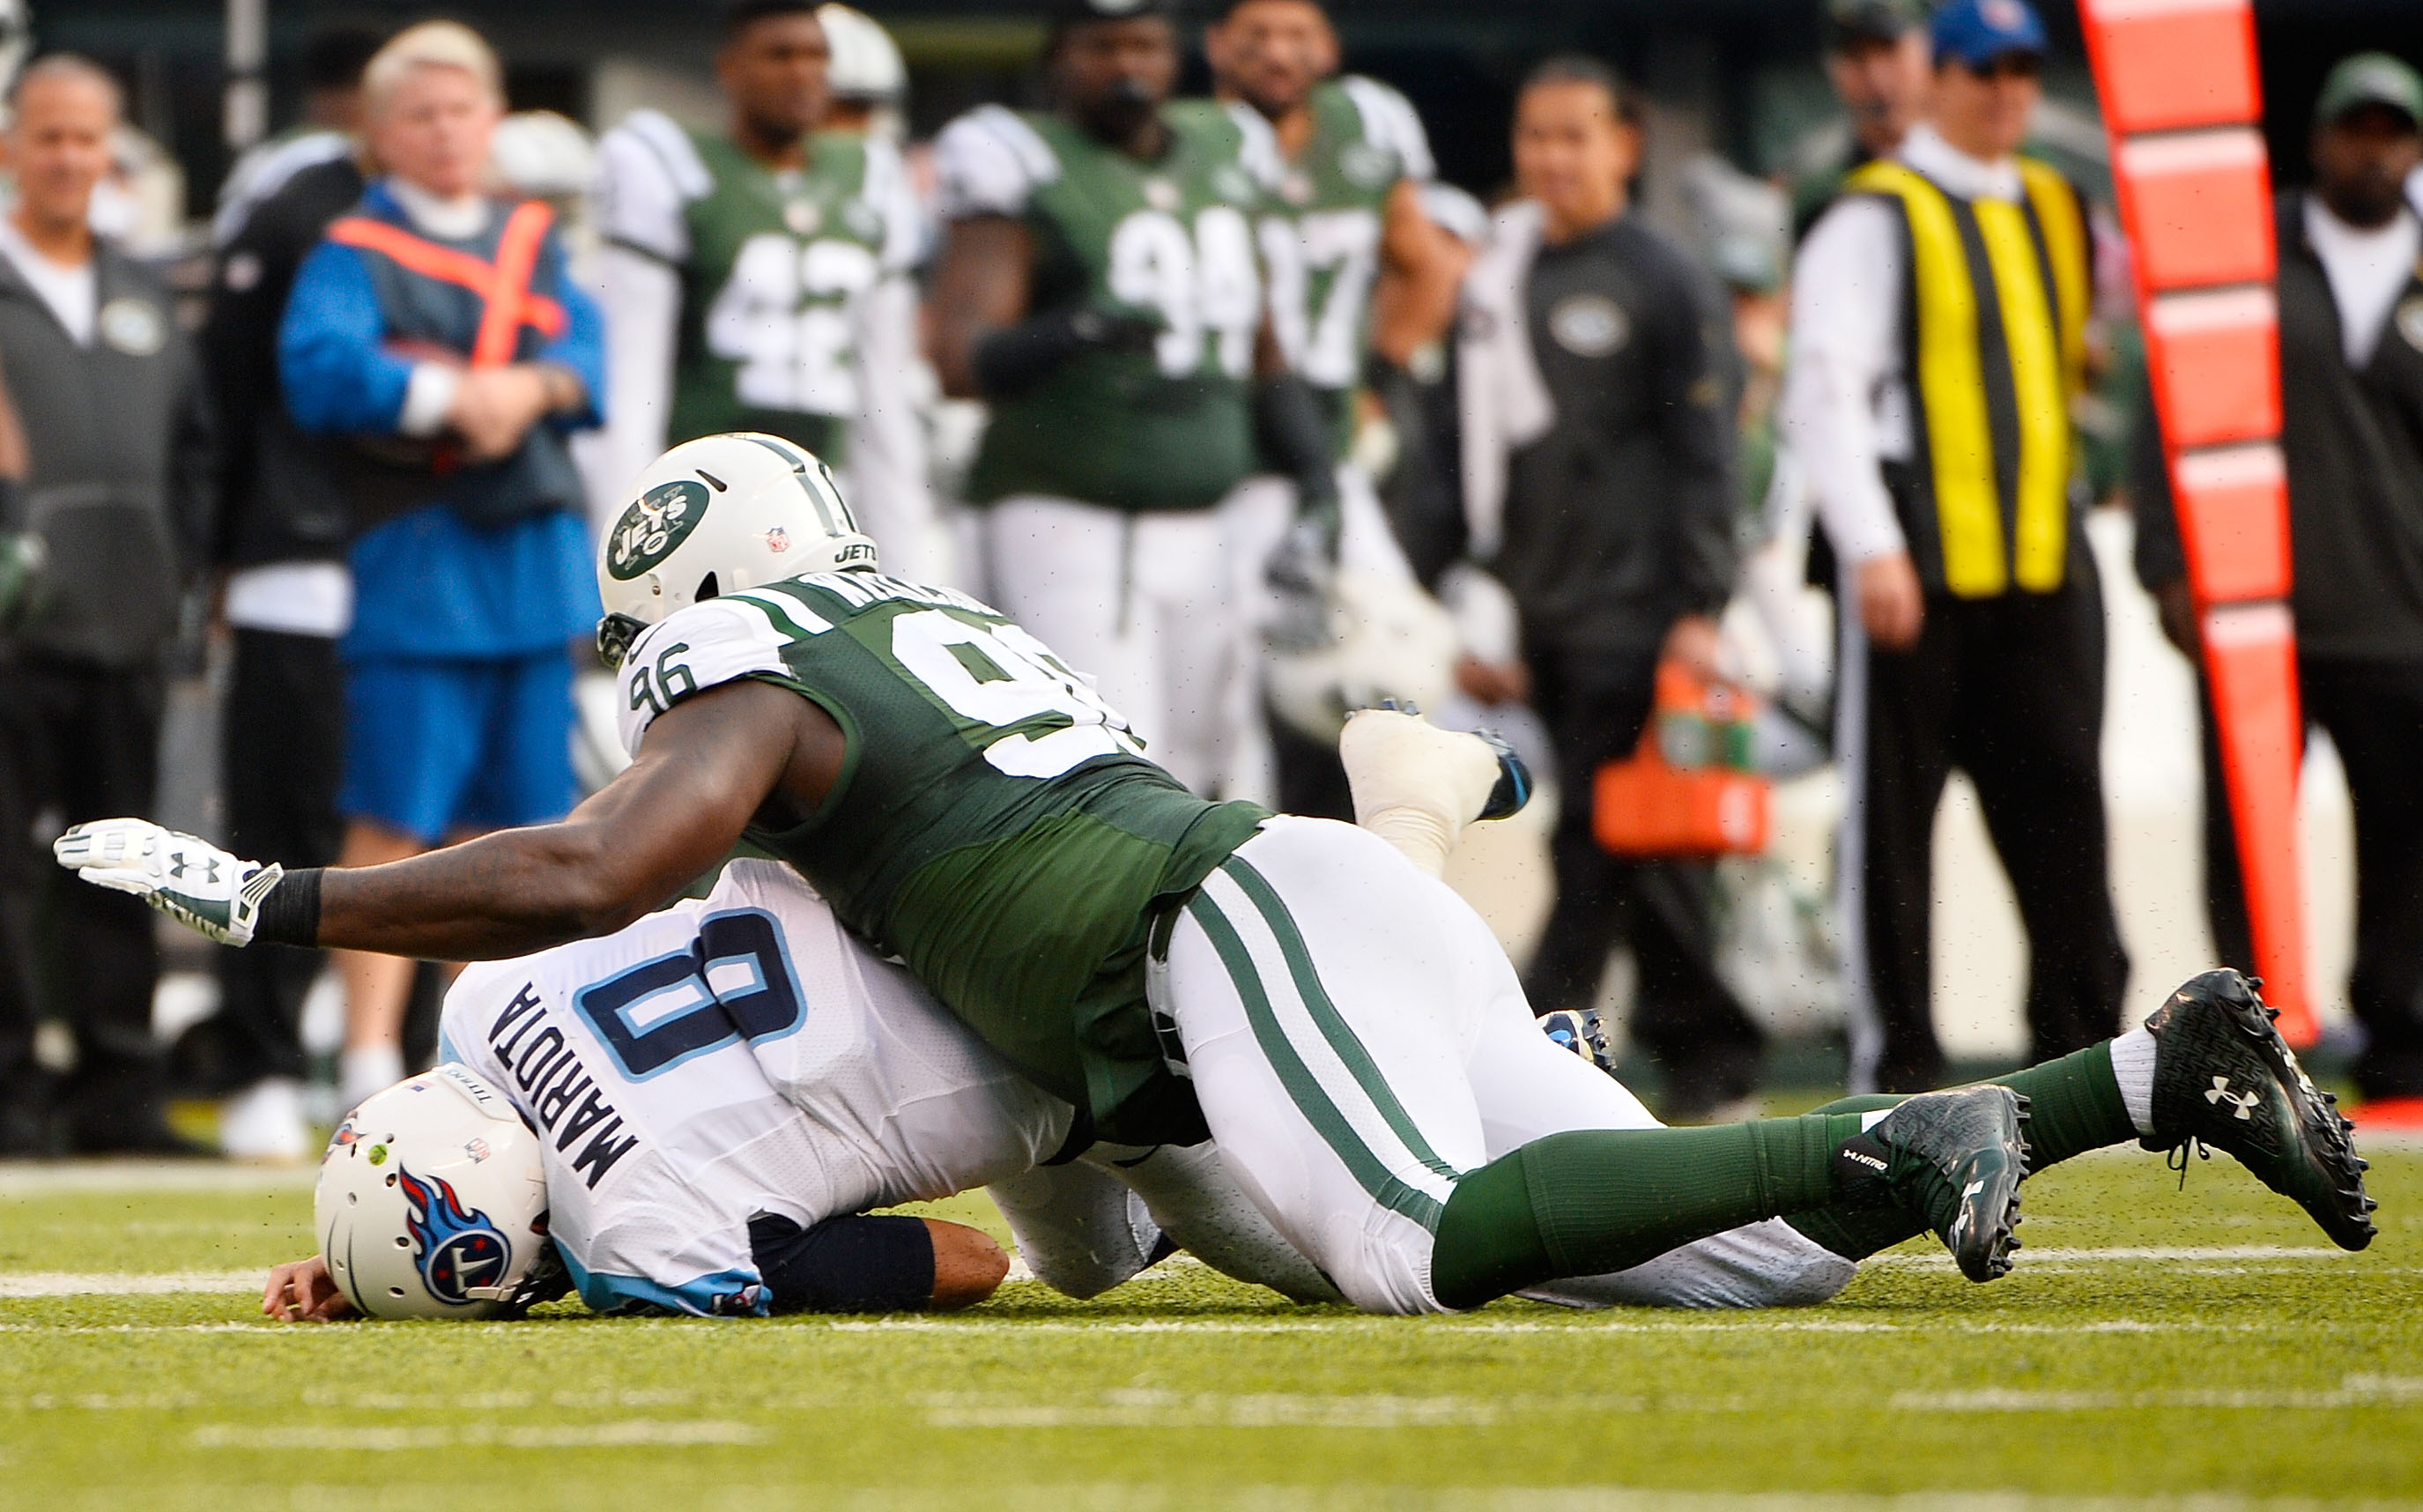 New York Giants have bigger fish to fry than Wilkerson s ego